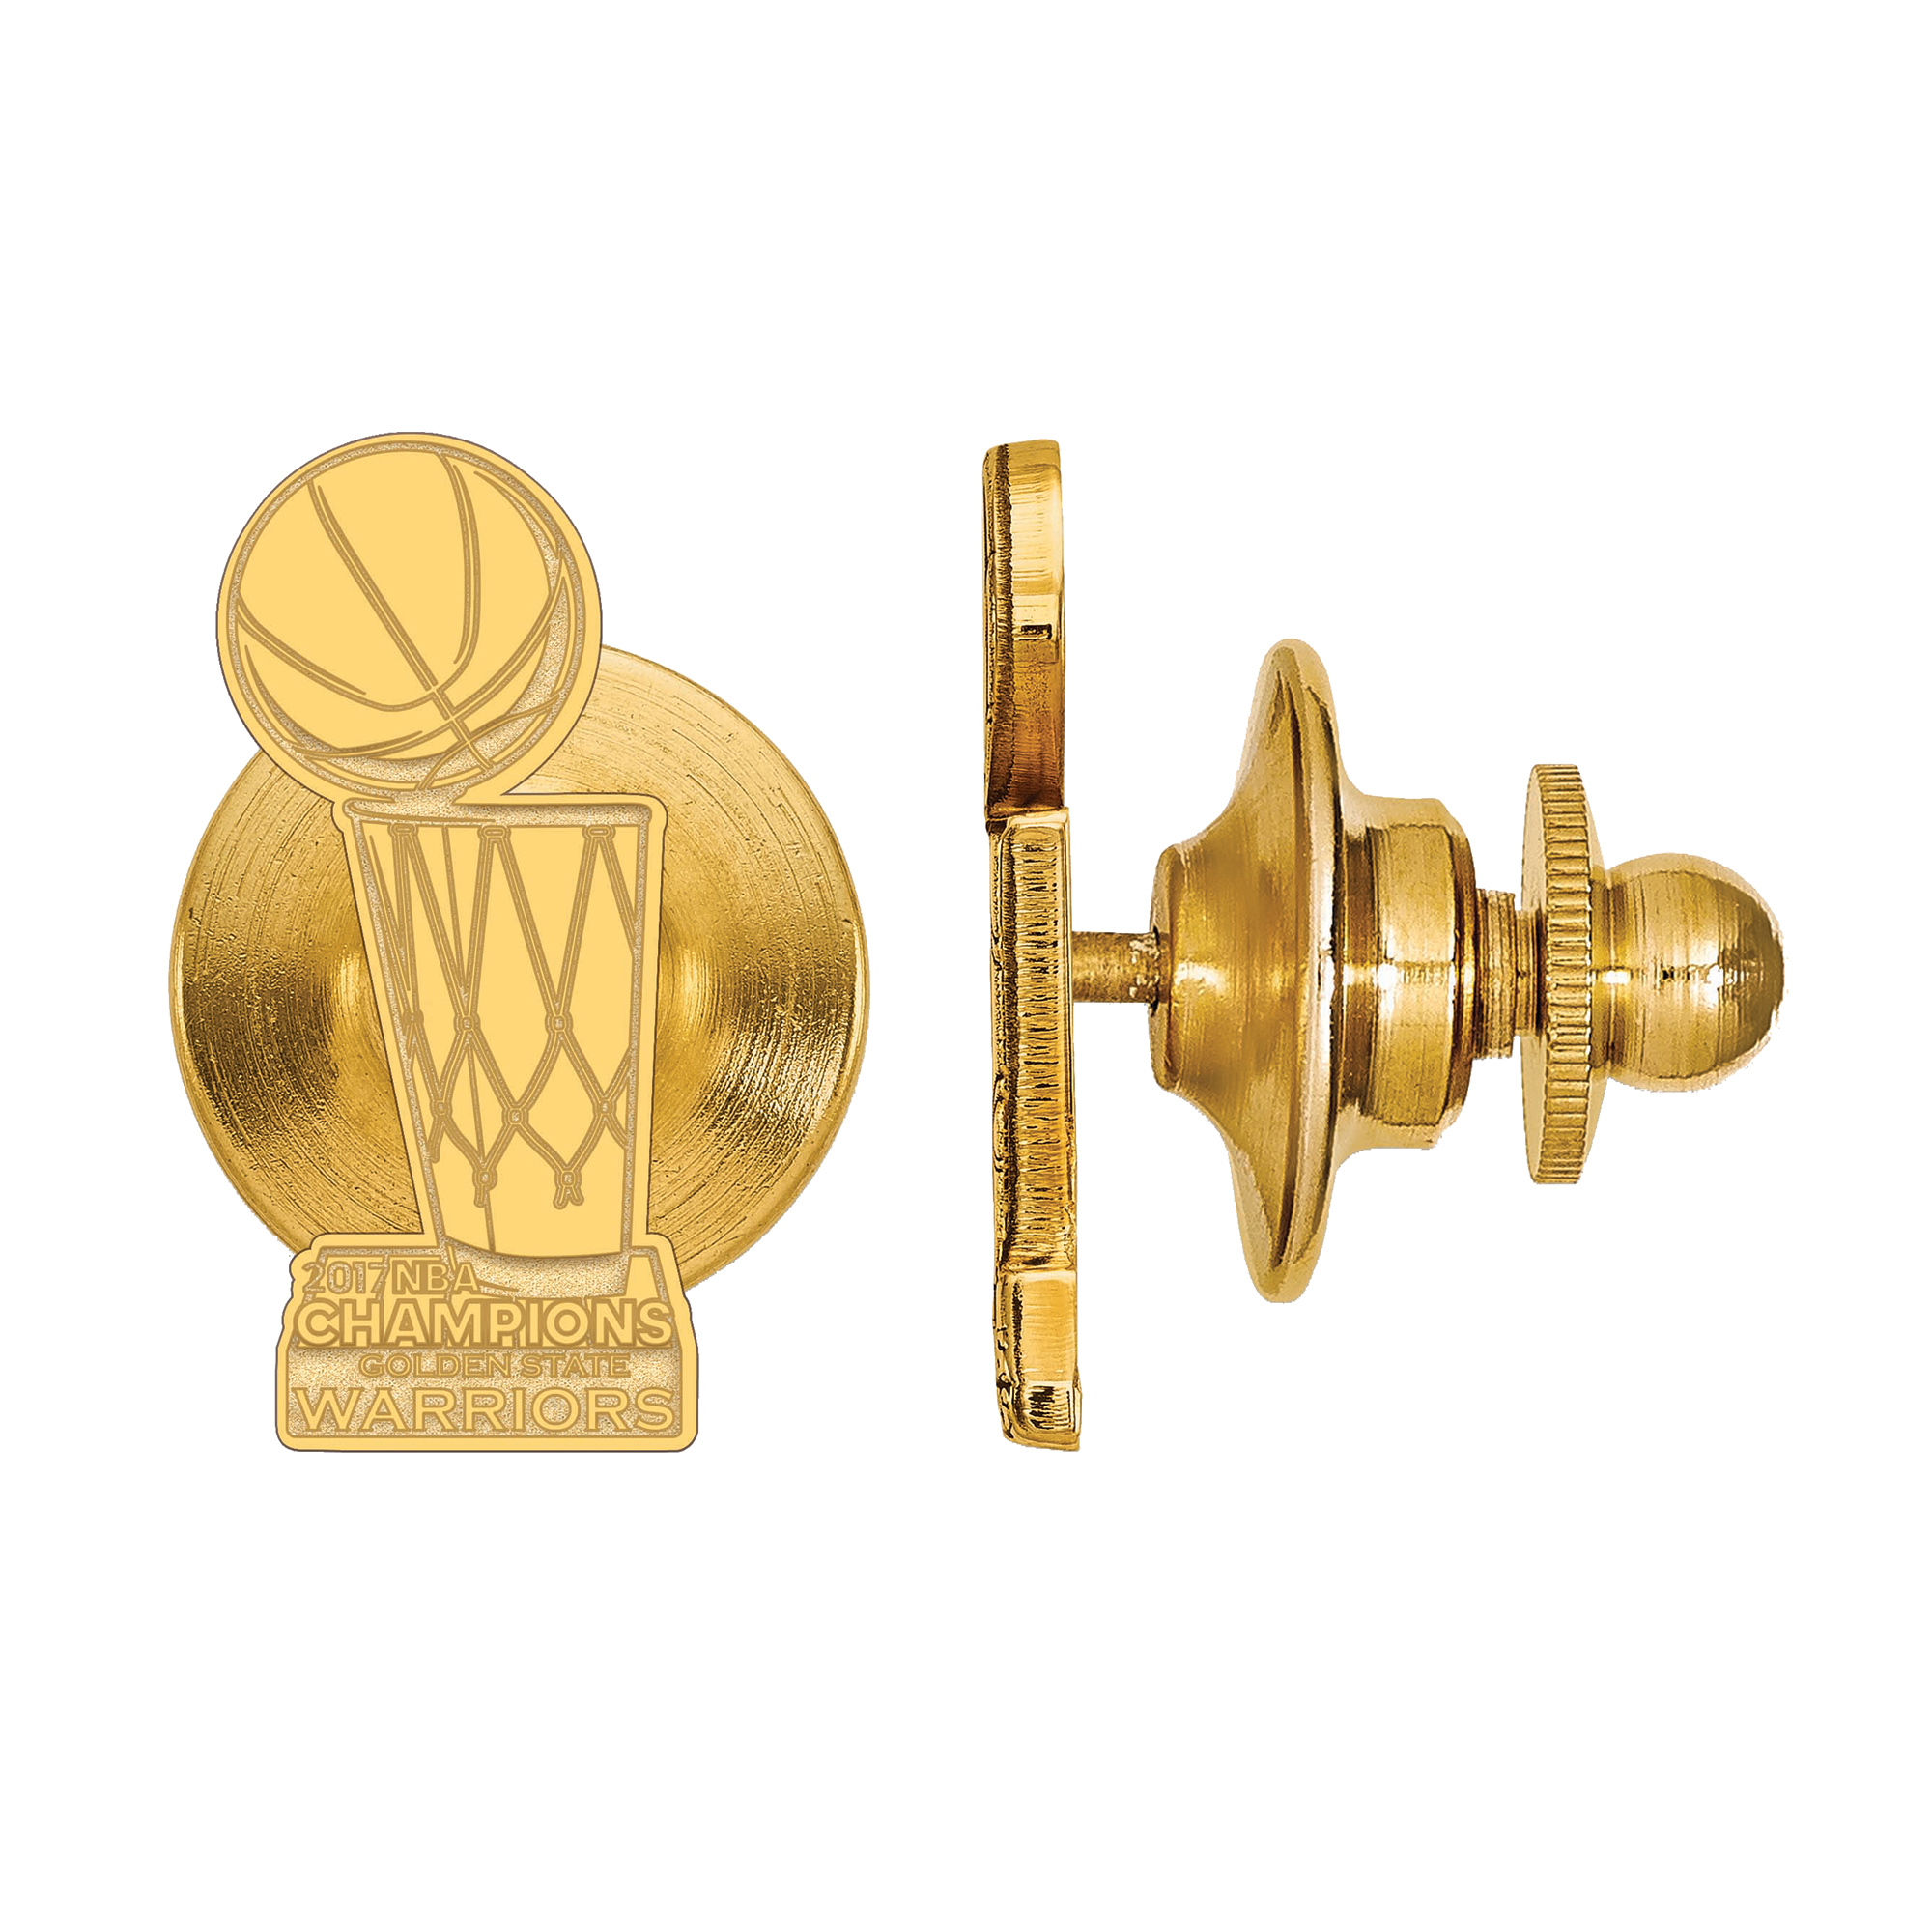 Golden State Warriors 2017 NBA Finals Champions Gold-Plated Sterling Silver Tie Tack - No Size